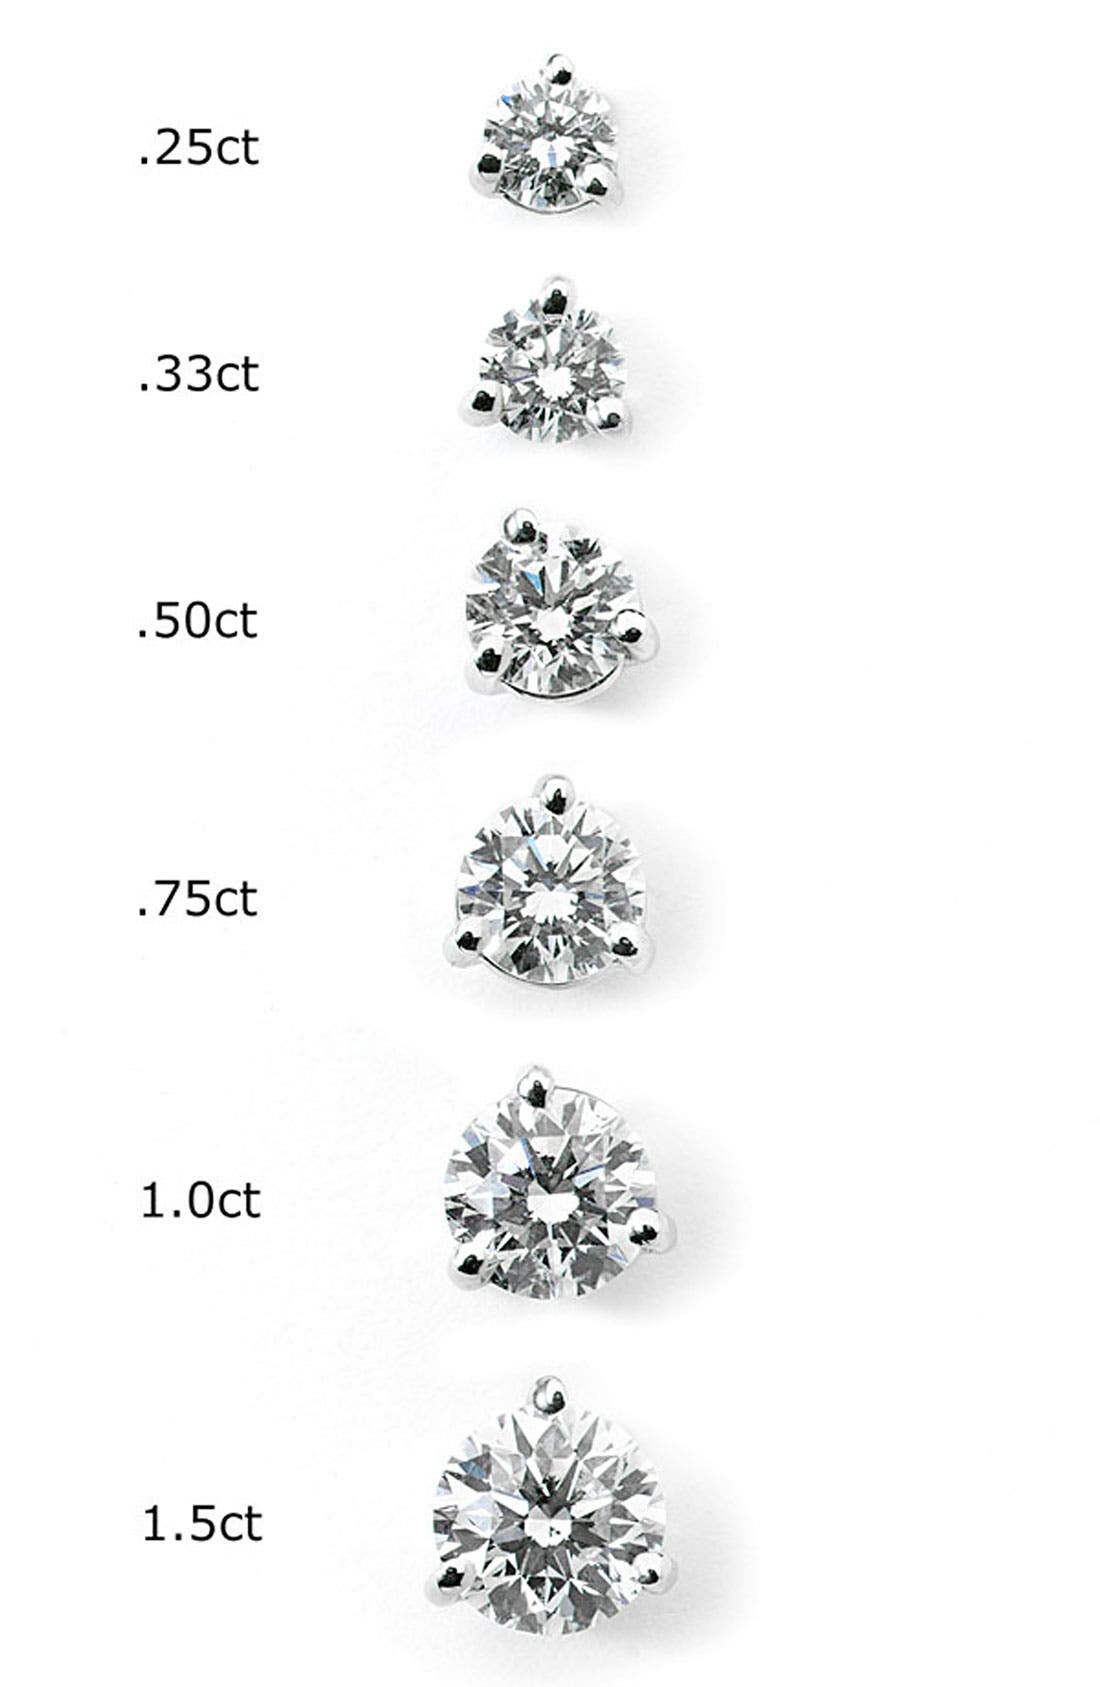 0.50ct tw Diamond & Platinum Stud Earrings,                             Alternate thumbnail 2, color,                             PLATINUM